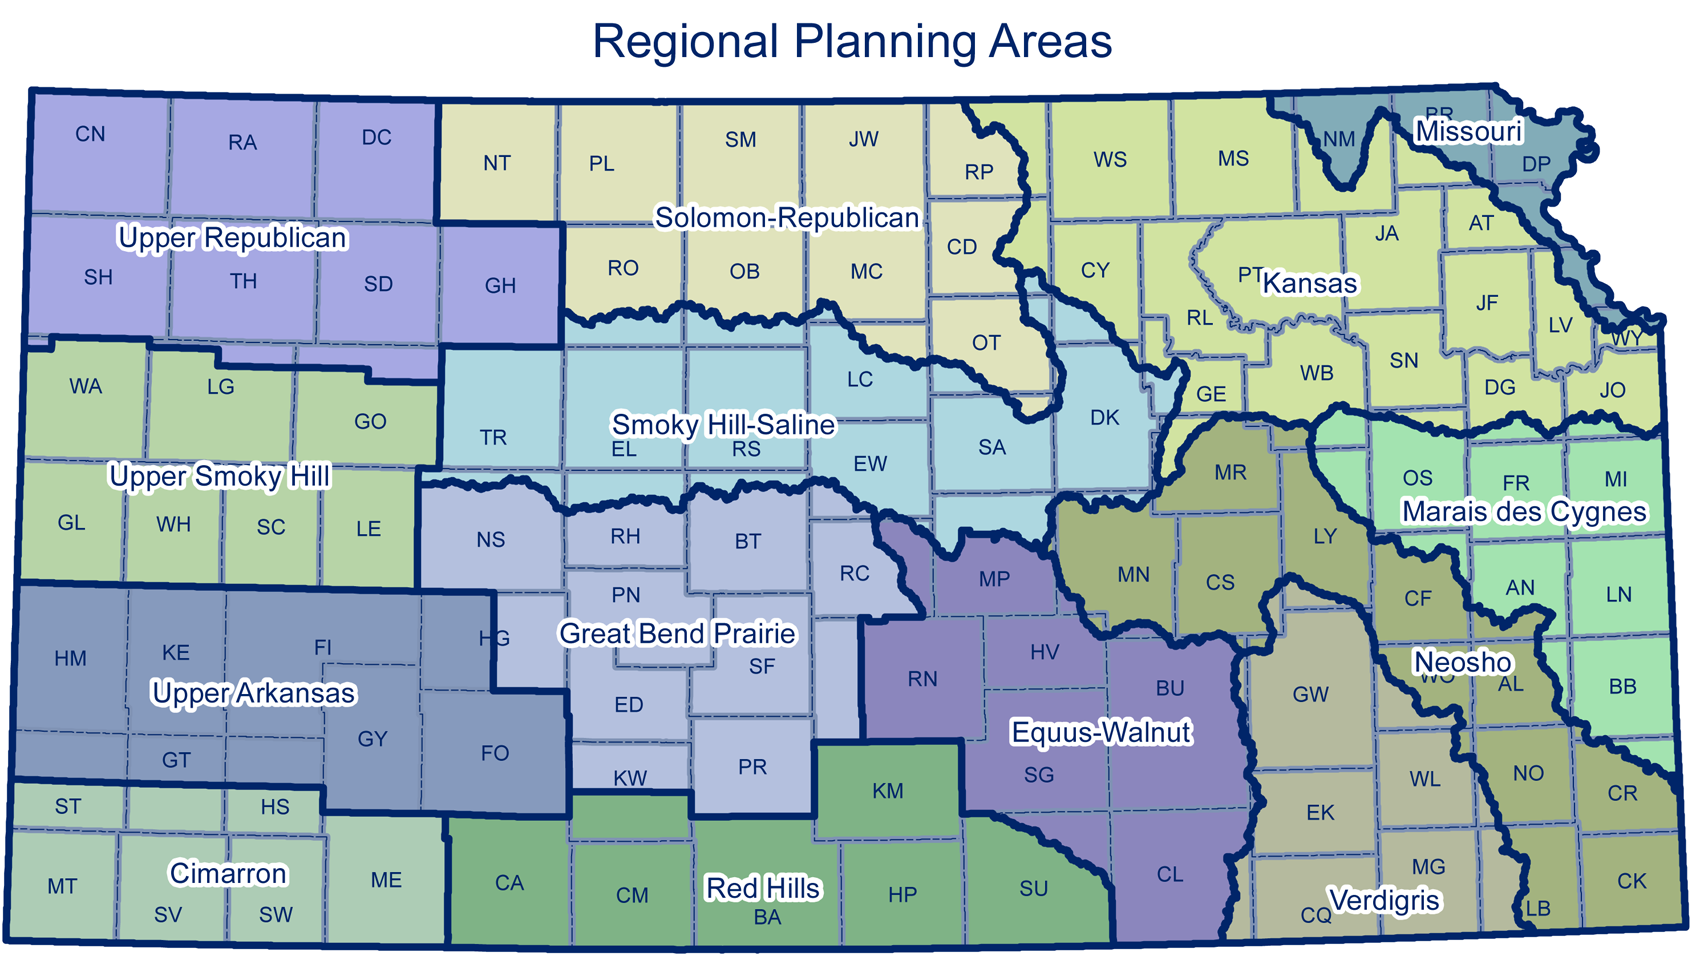 Kansas neosho county stark - Kansas Rural Water Association Provides Technical Assistance For Water Systems In The Areas Of Water Rights Wellhead Protection Source Water Protection